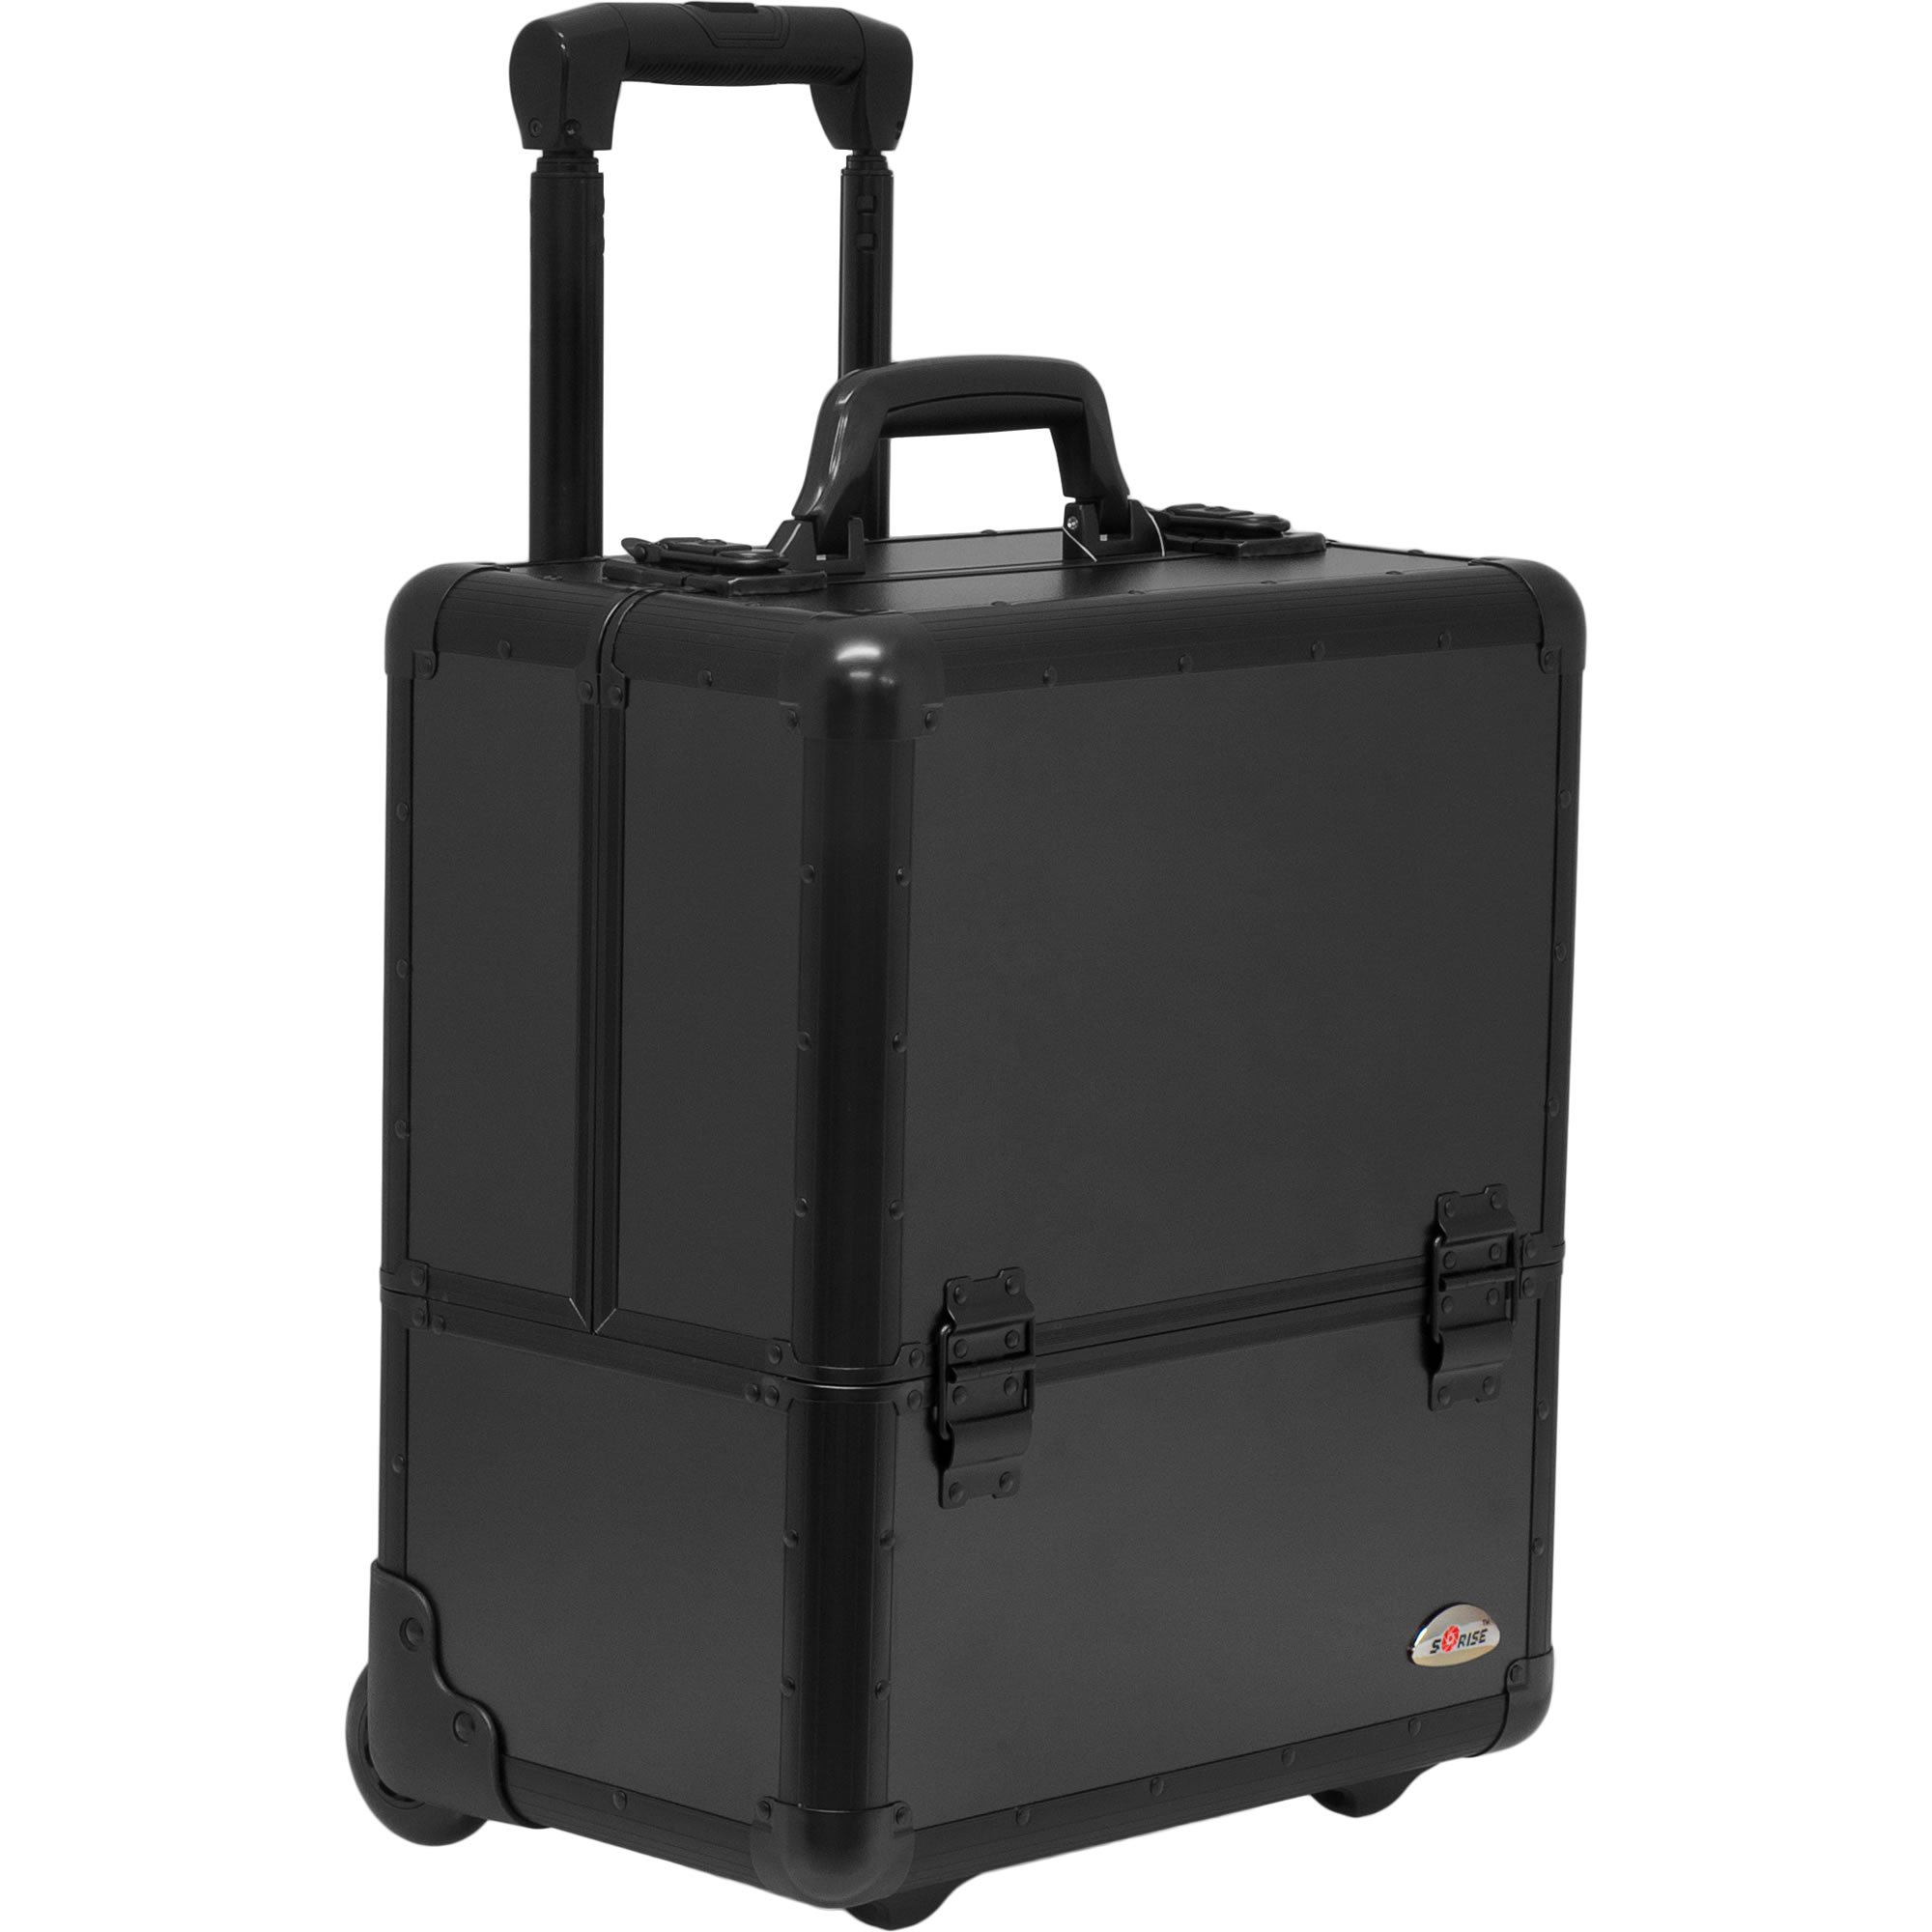 SUNRISE Makeup Case on Wheels C6033 Artis Professional Storage, 8 Trays with Adjustable Dividers, Black Matte by SunRise